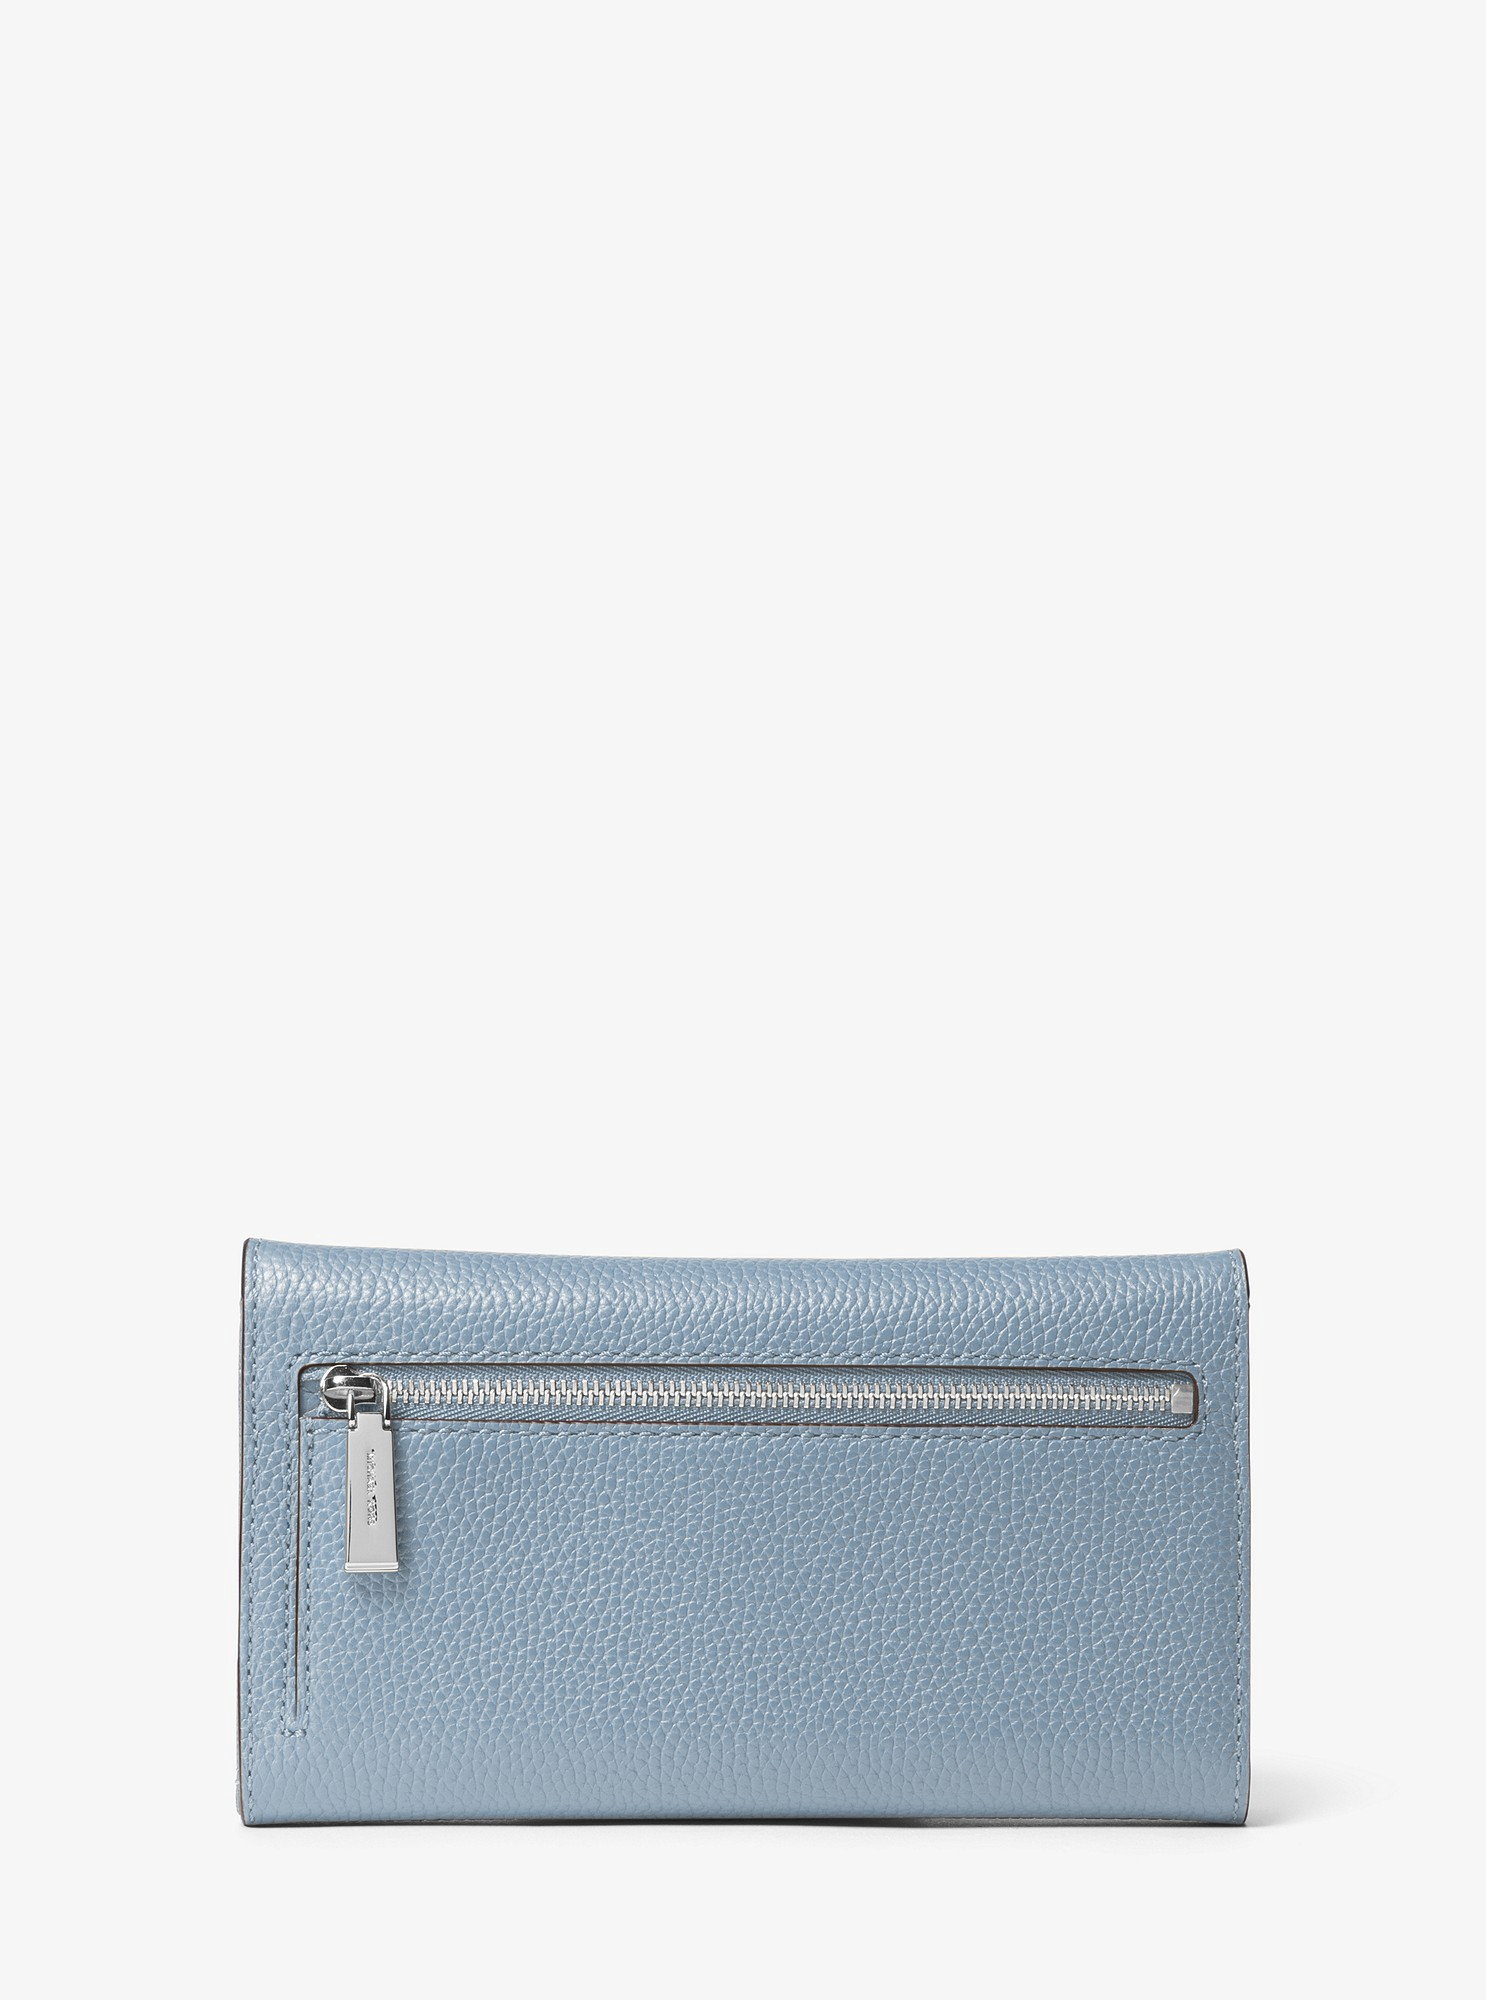 8658afd65745 Michael Kors Mercer Tri-Fold Leather Wallet - Pale Blue | Products ...